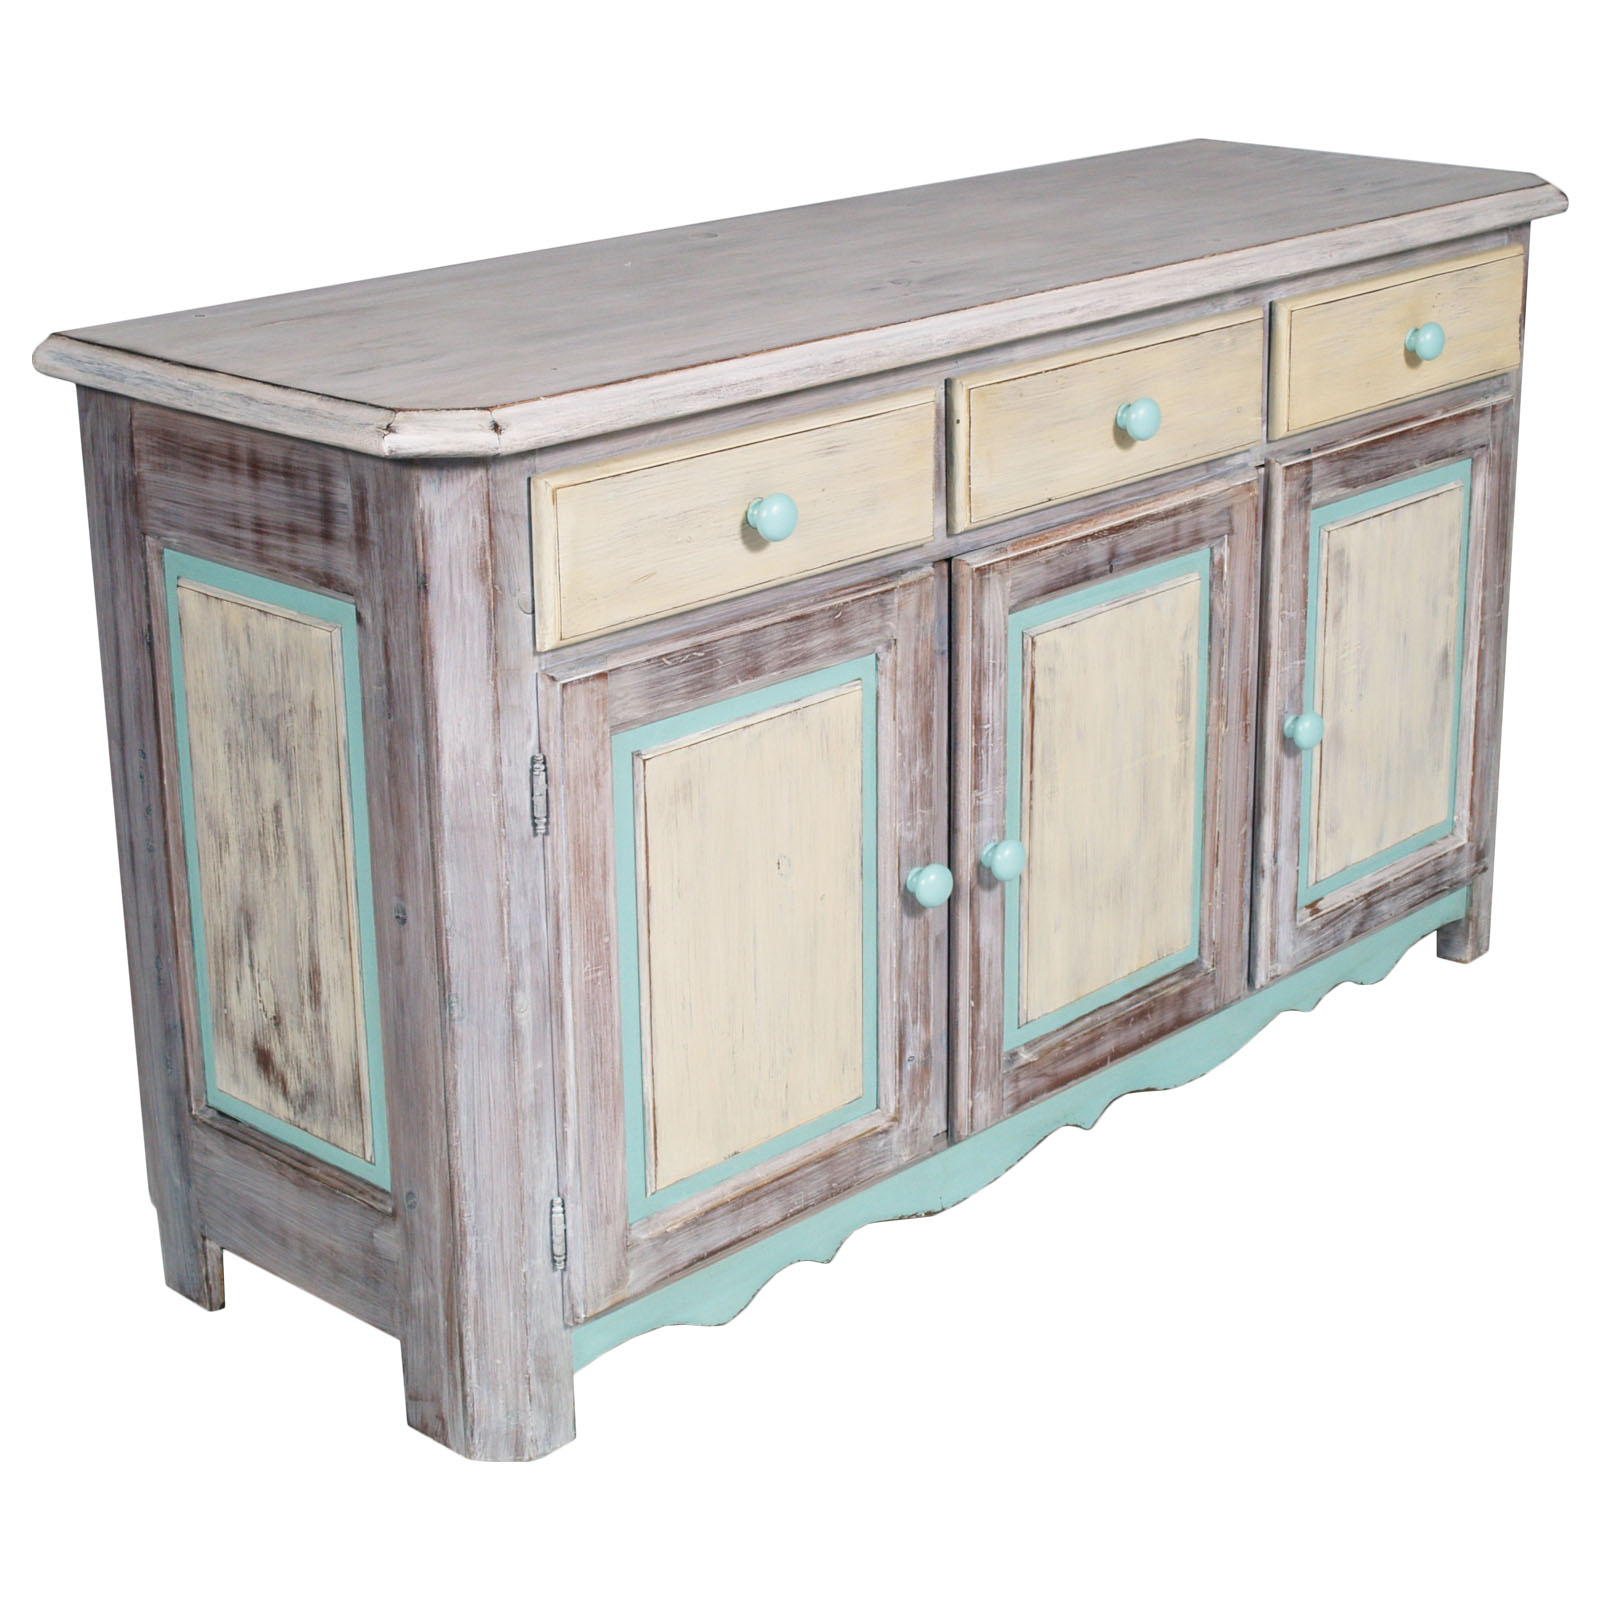 shabby chic buffet sideboard display cabinet credenza vetrina country my 92 ebay. Black Bedroom Furniture Sets. Home Design Ideas